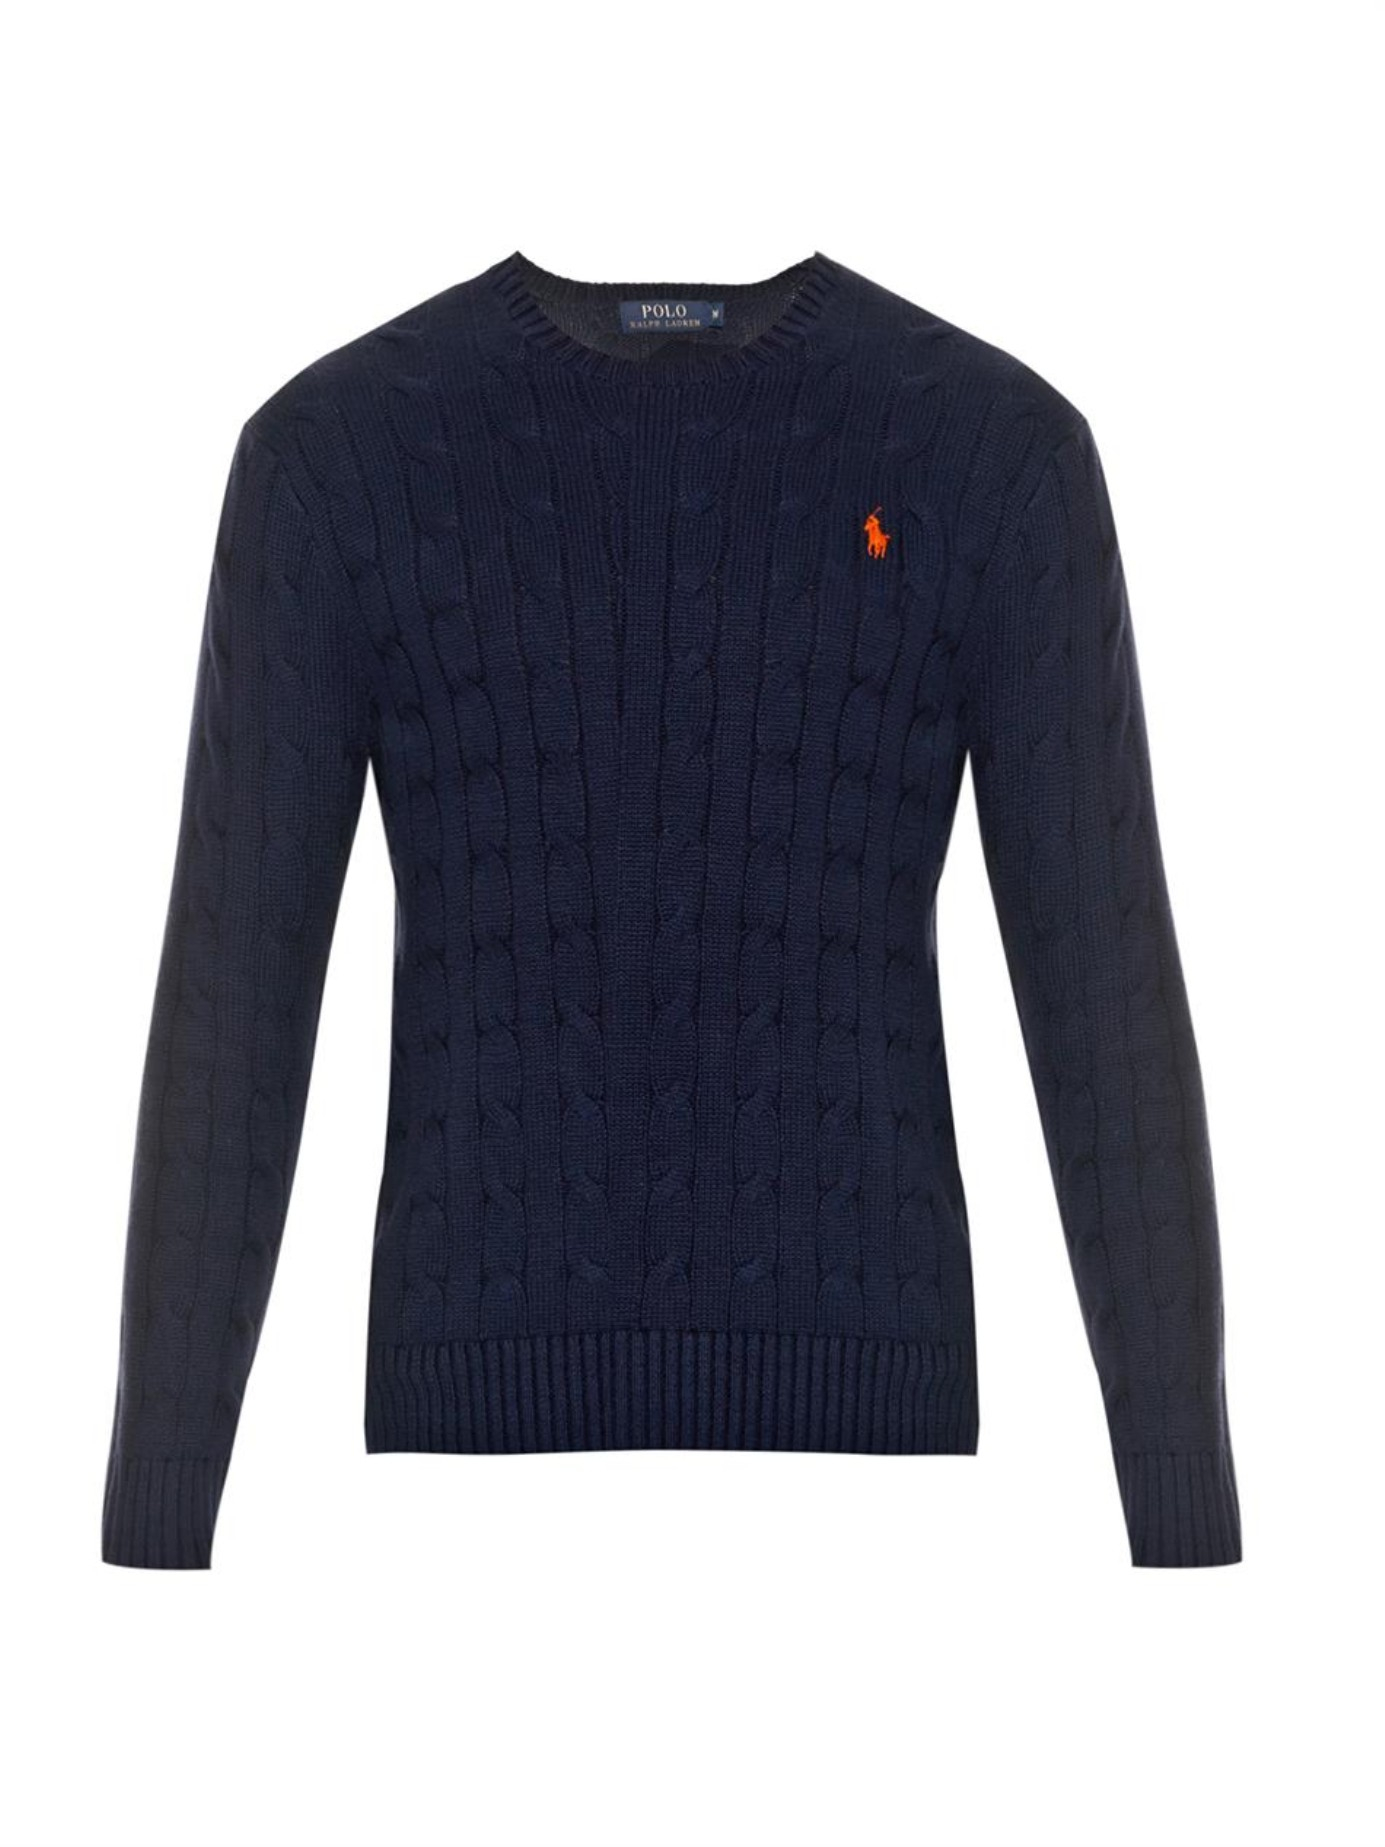 Blue Ralph Men Knit Sweater Polo Lauren Cable For Cotton DEH2IW9